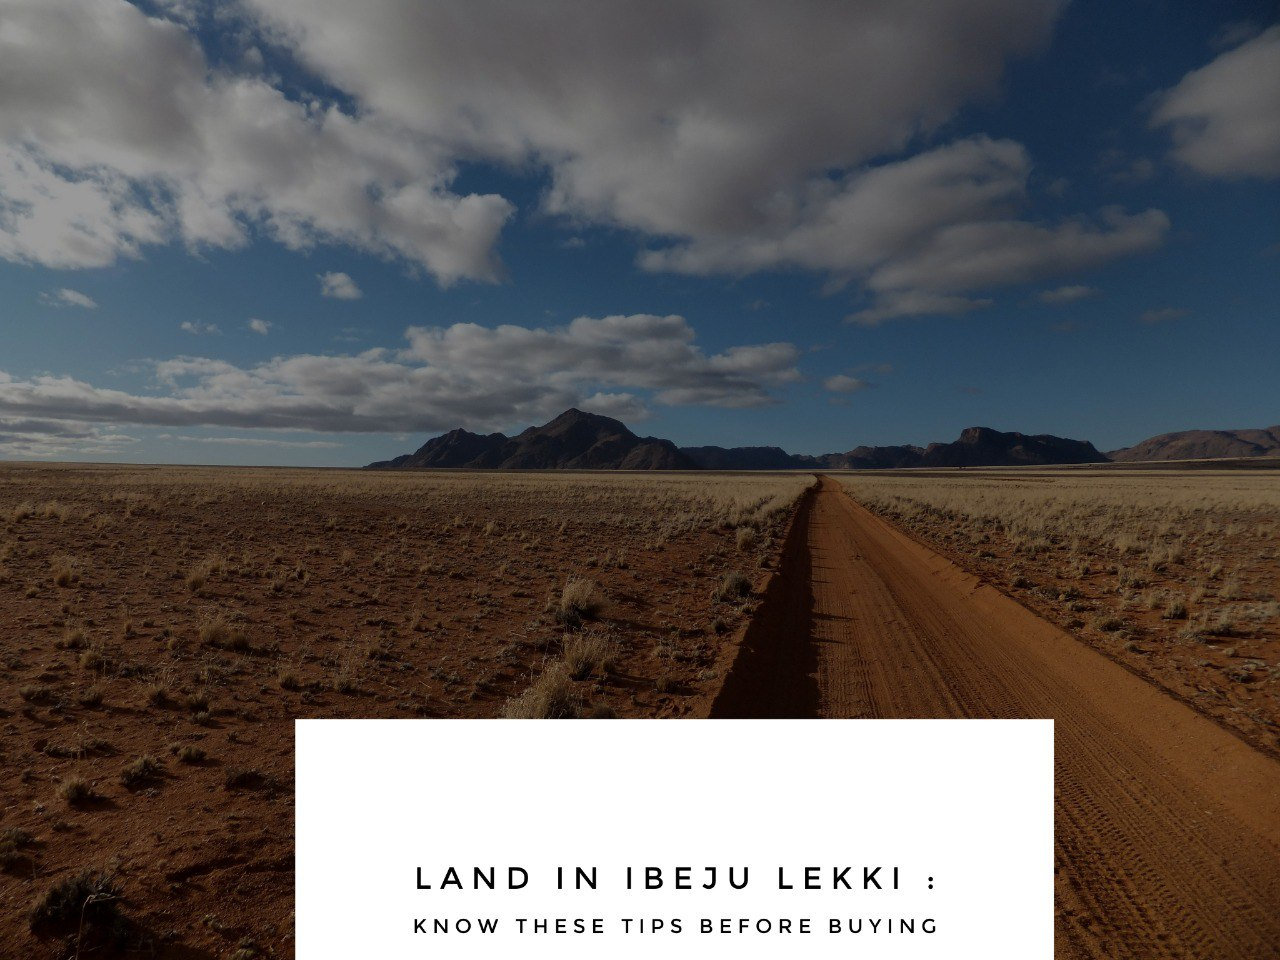 Land in Ibeju Lekki Know these Tips Before Buying - Land in Ibeju Lekki: Know These Tips Before Buying!